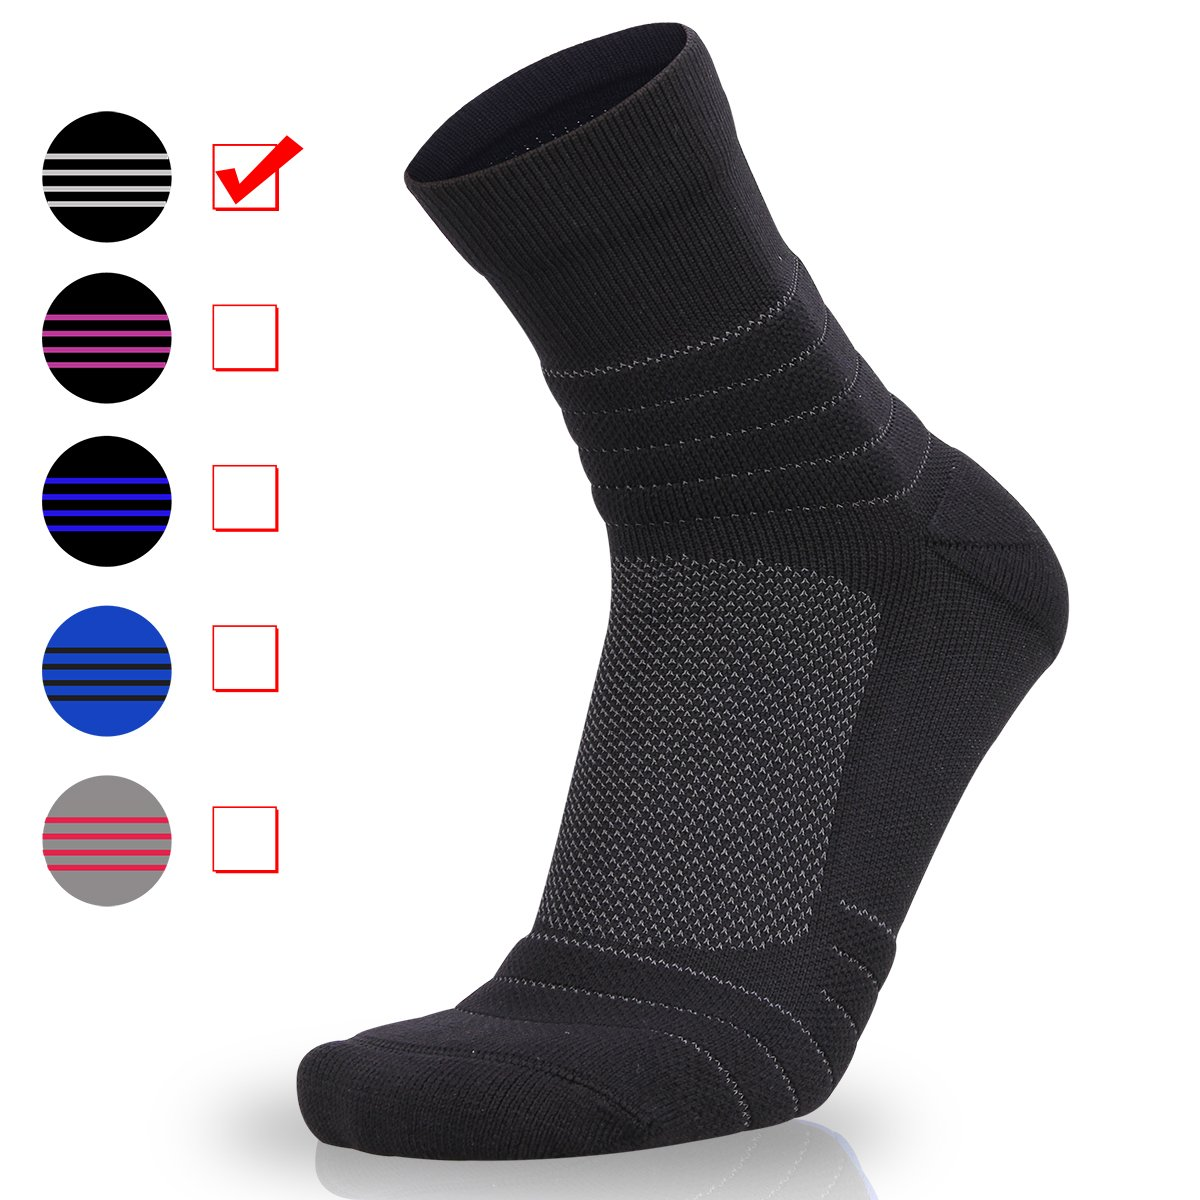 Zisuper Men's Athletic Running Performance Compression Crew Socks Sport Wicking Cushion Workout Basketball Cycling High Ankle Socks for Men